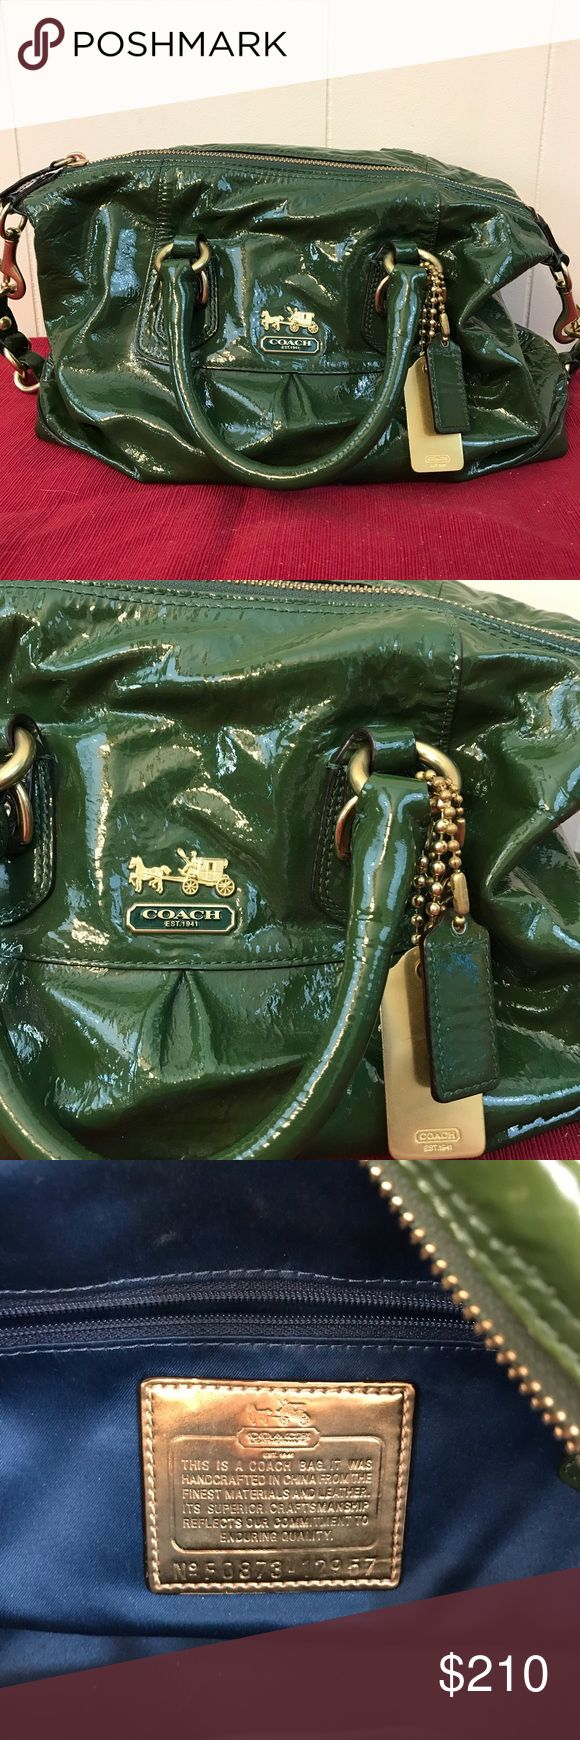 Authentic Coach Purse RARE Madison Sabrina Green Authentic barely used, immaculately clean and properly stored in a dust bag - this green Coach Patent Leather Purse is a Madison Sabrina Satchel  12 in across  7-8 in deep  Measurements are approximate  Like new. Can be a great Christmas or holiday gift! Coach Bags Satchels